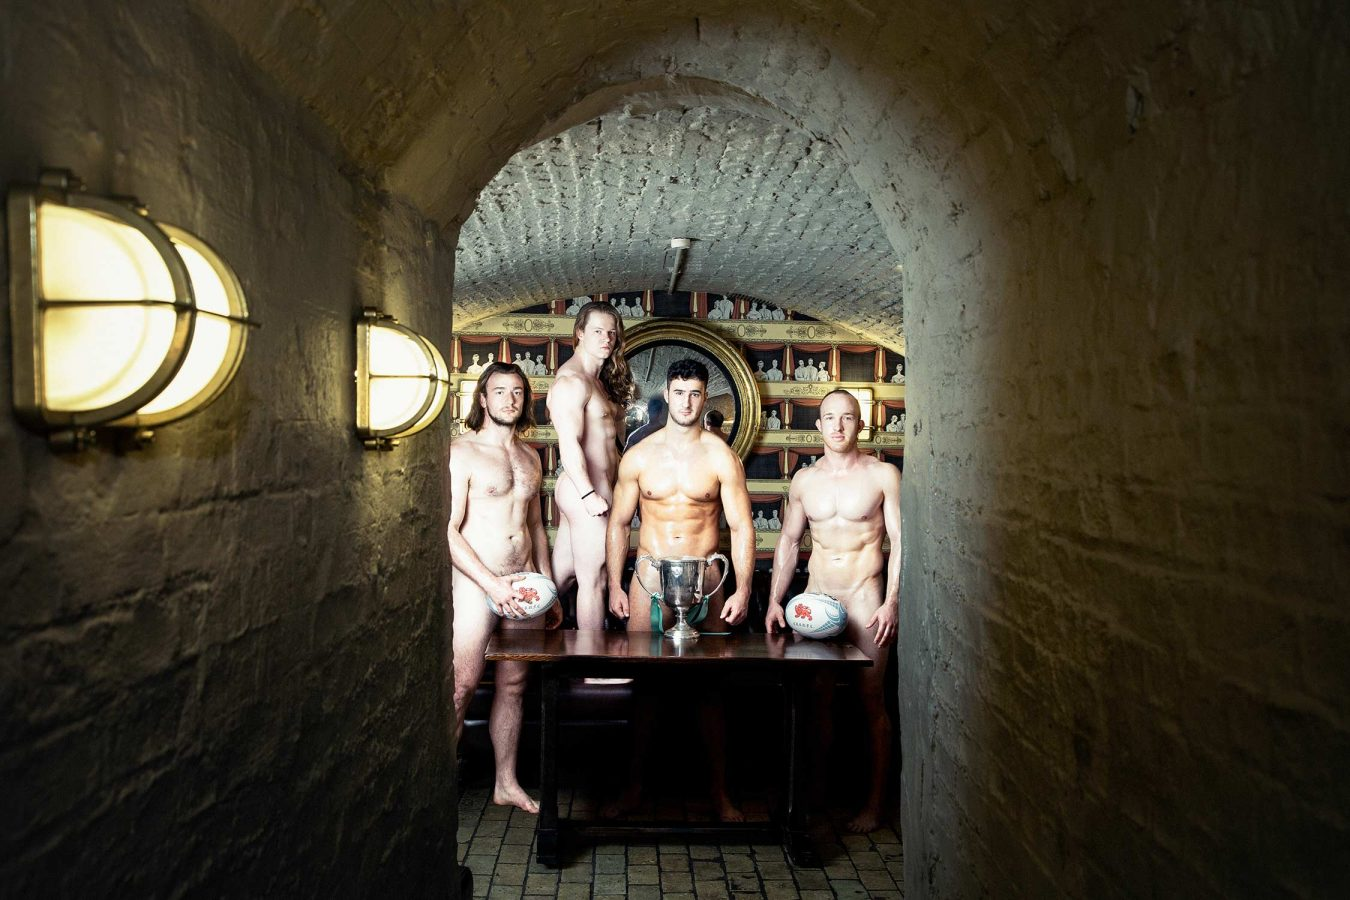 university of Cambridge naked calendar 2021 chop house